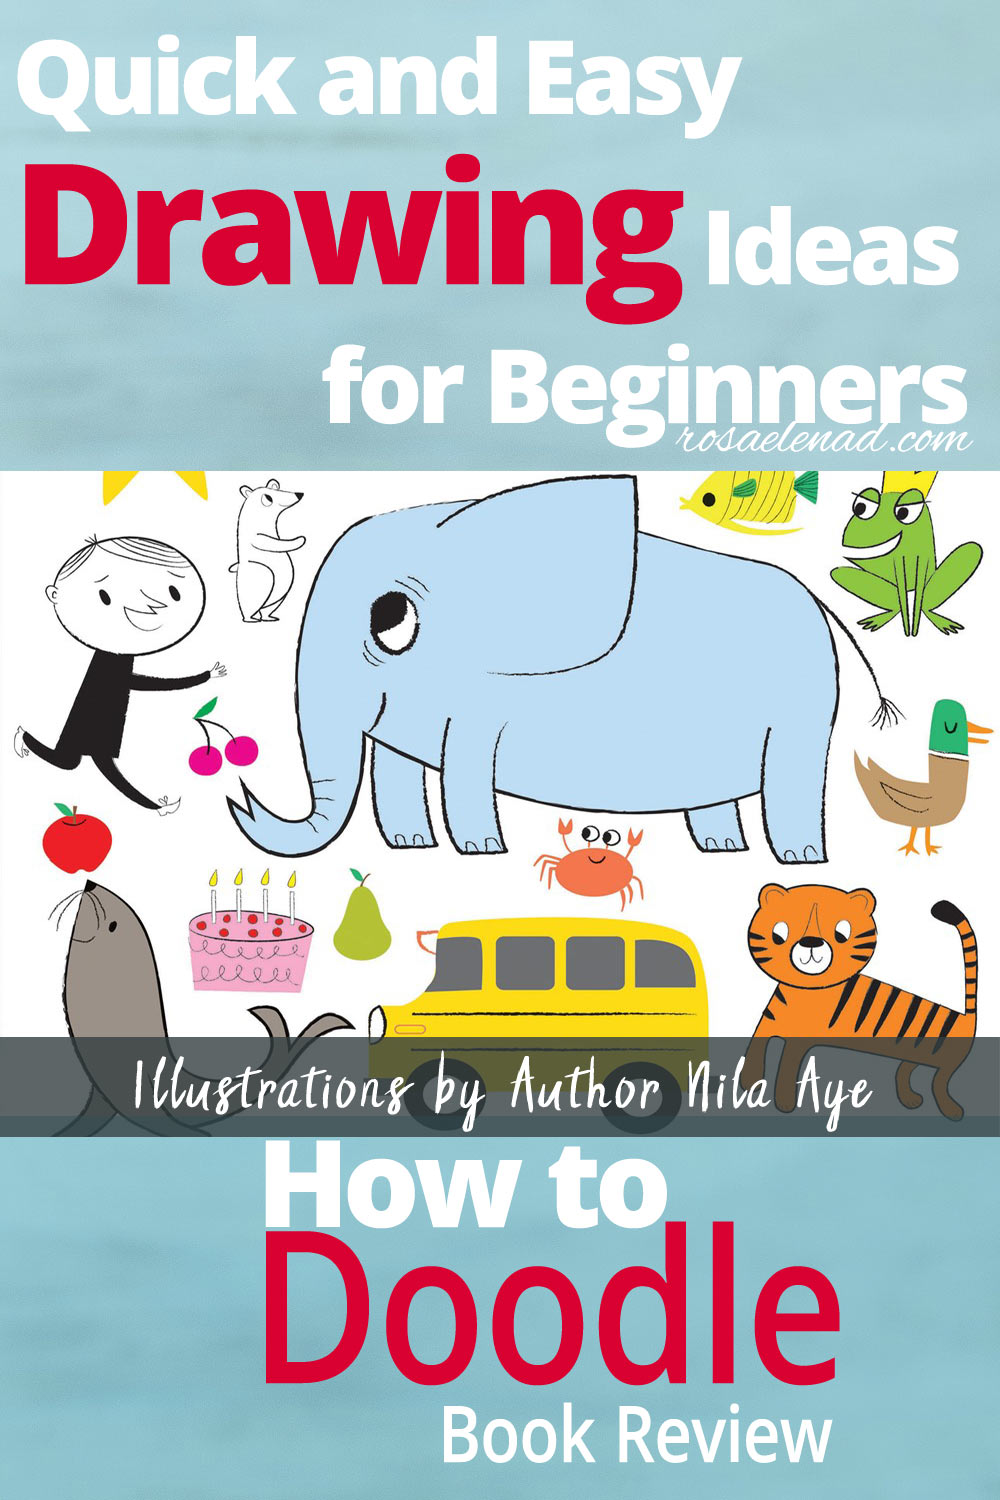 How to Doodle 250 Quick and Easy Drawing Ideas for Beginners  Rosa Elena